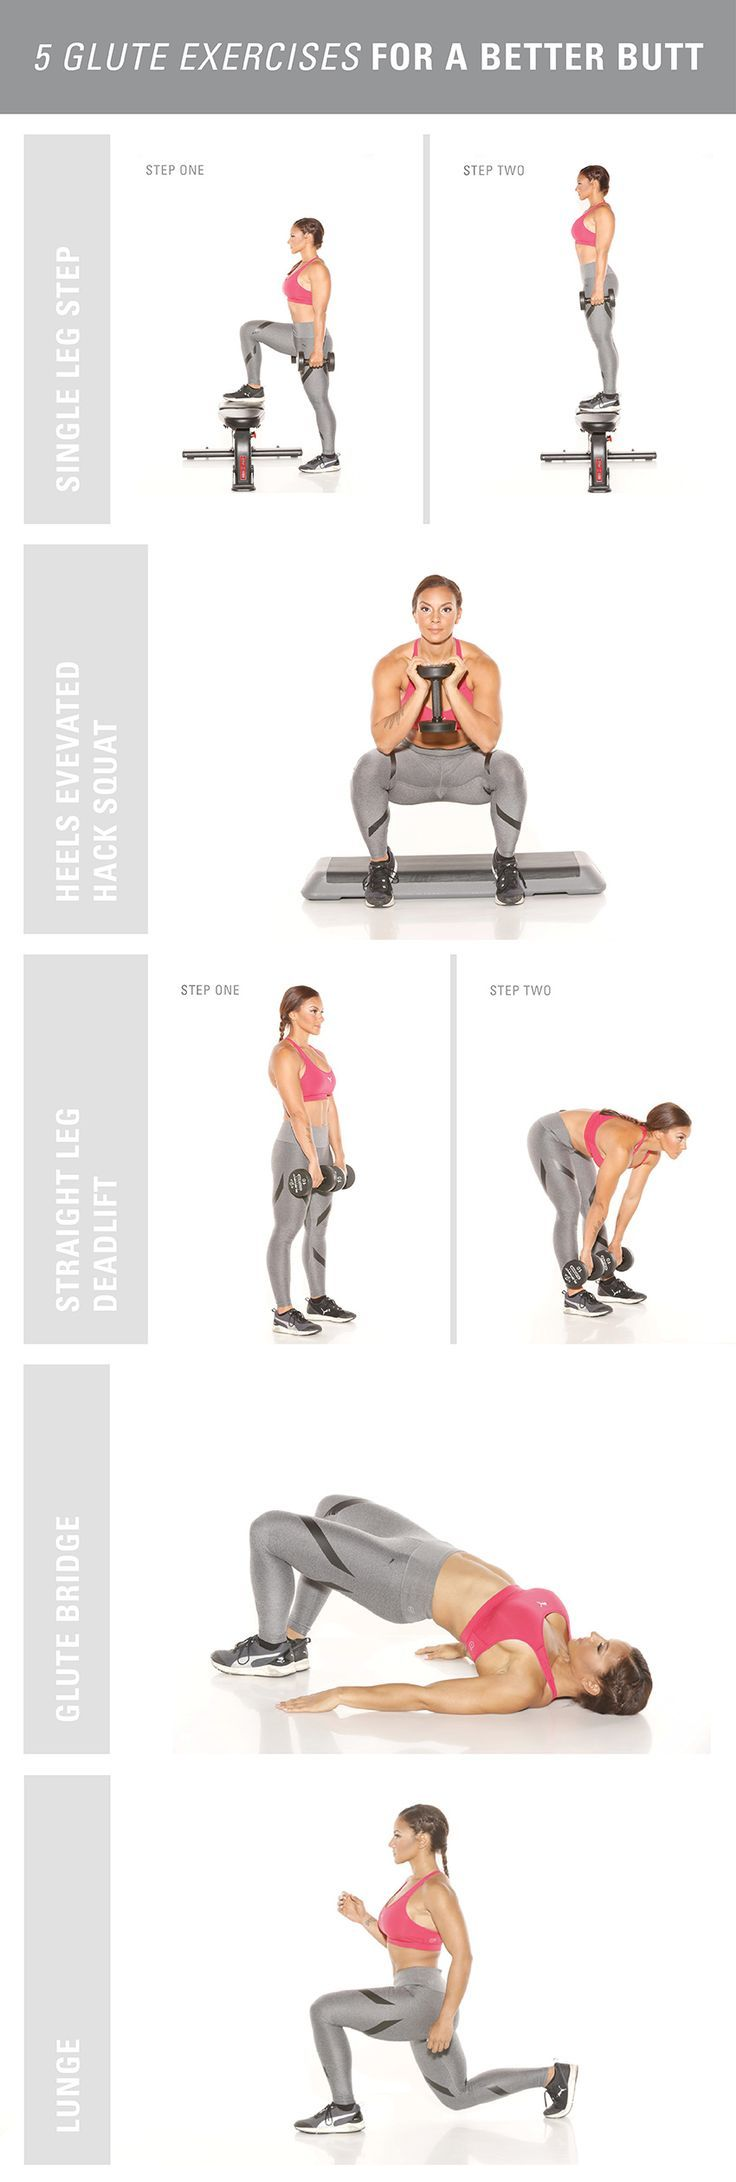 Best Glute Exercises To Get A Toned Butt   Fitness Republic